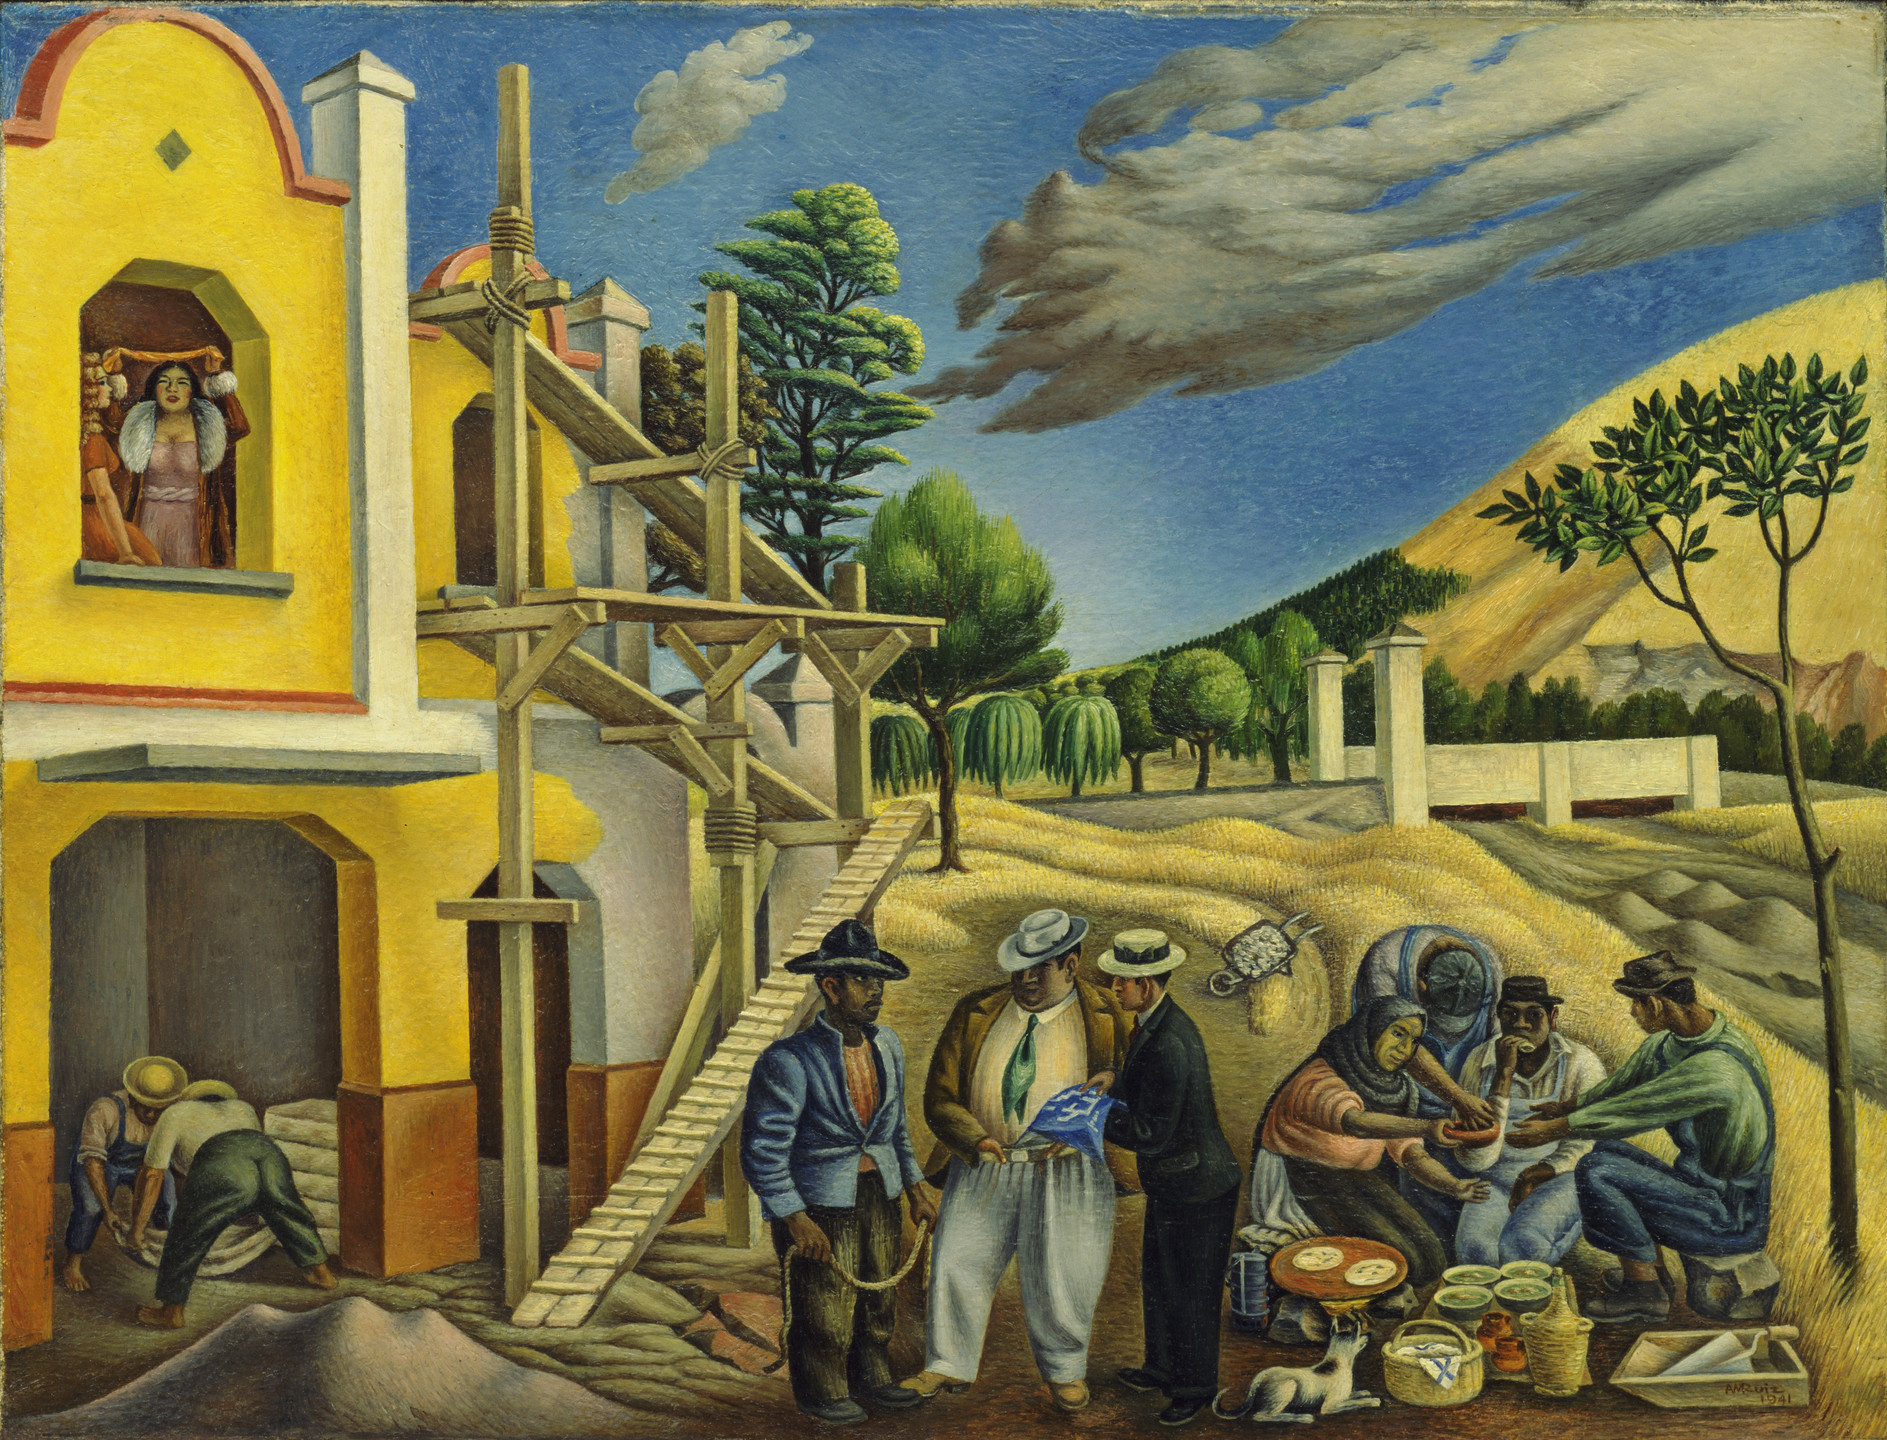 Antonio Ruiz. The New Rich. 1941